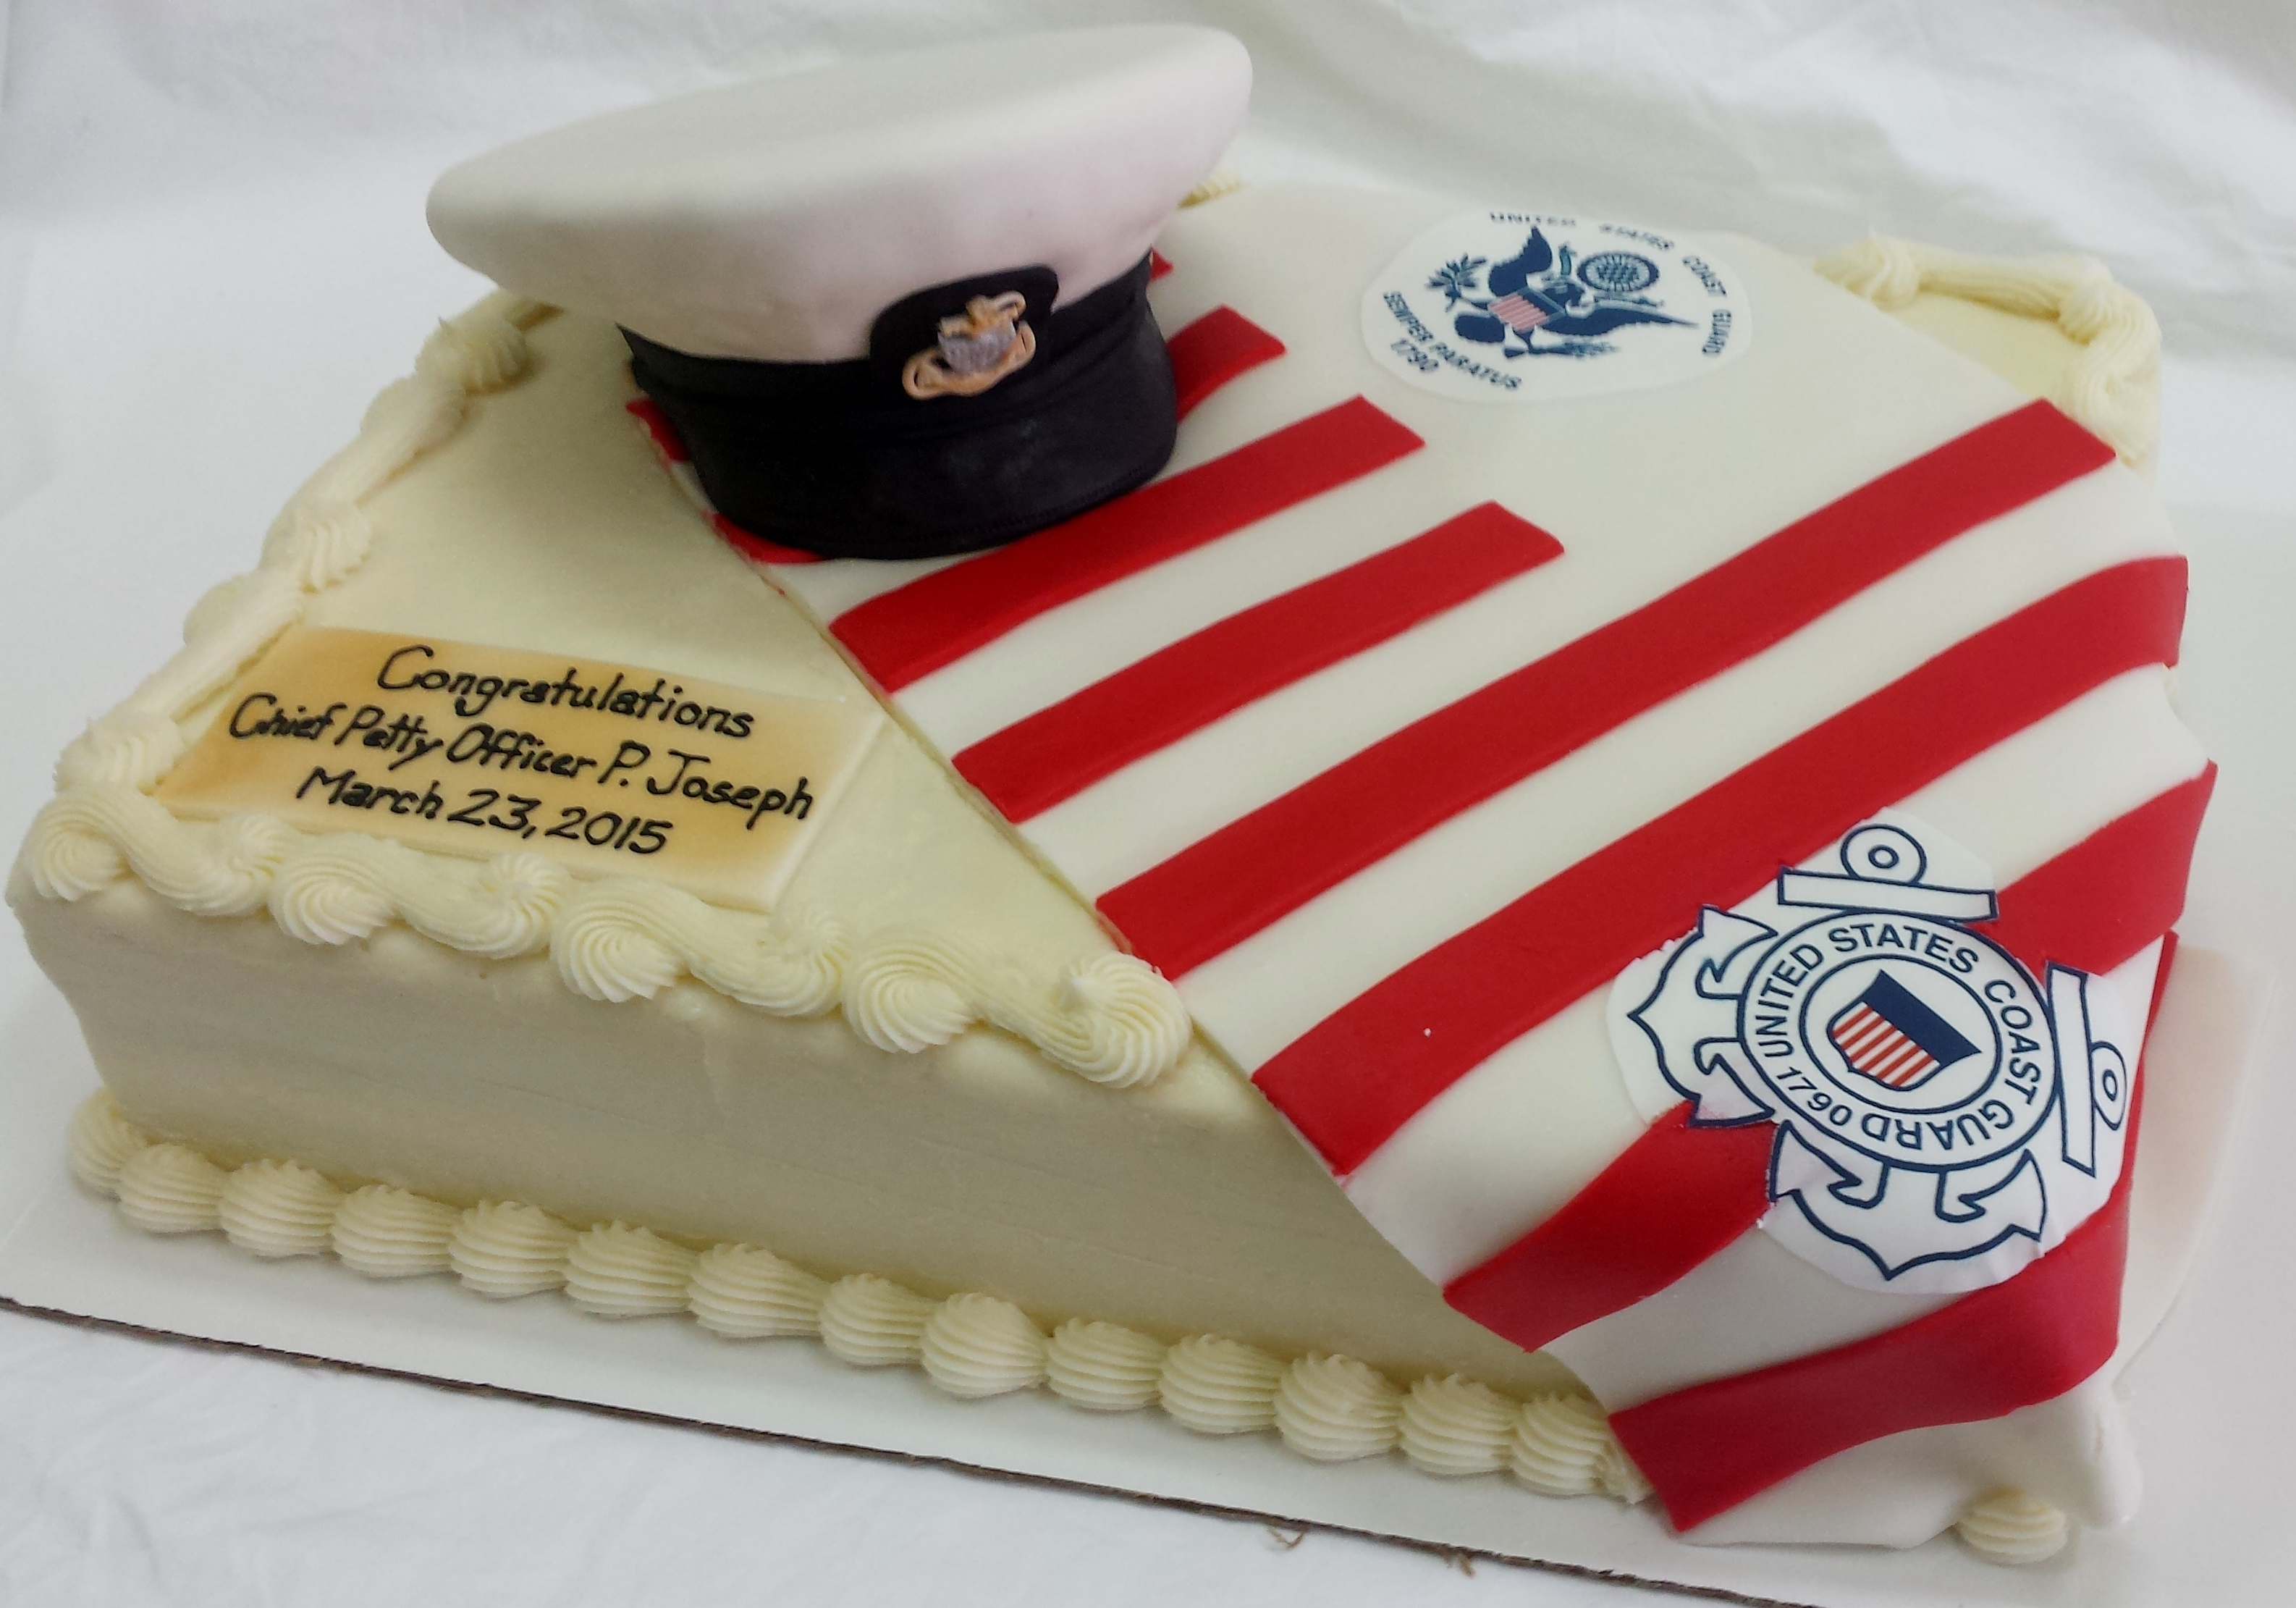 Coast Guard Retirement Cake